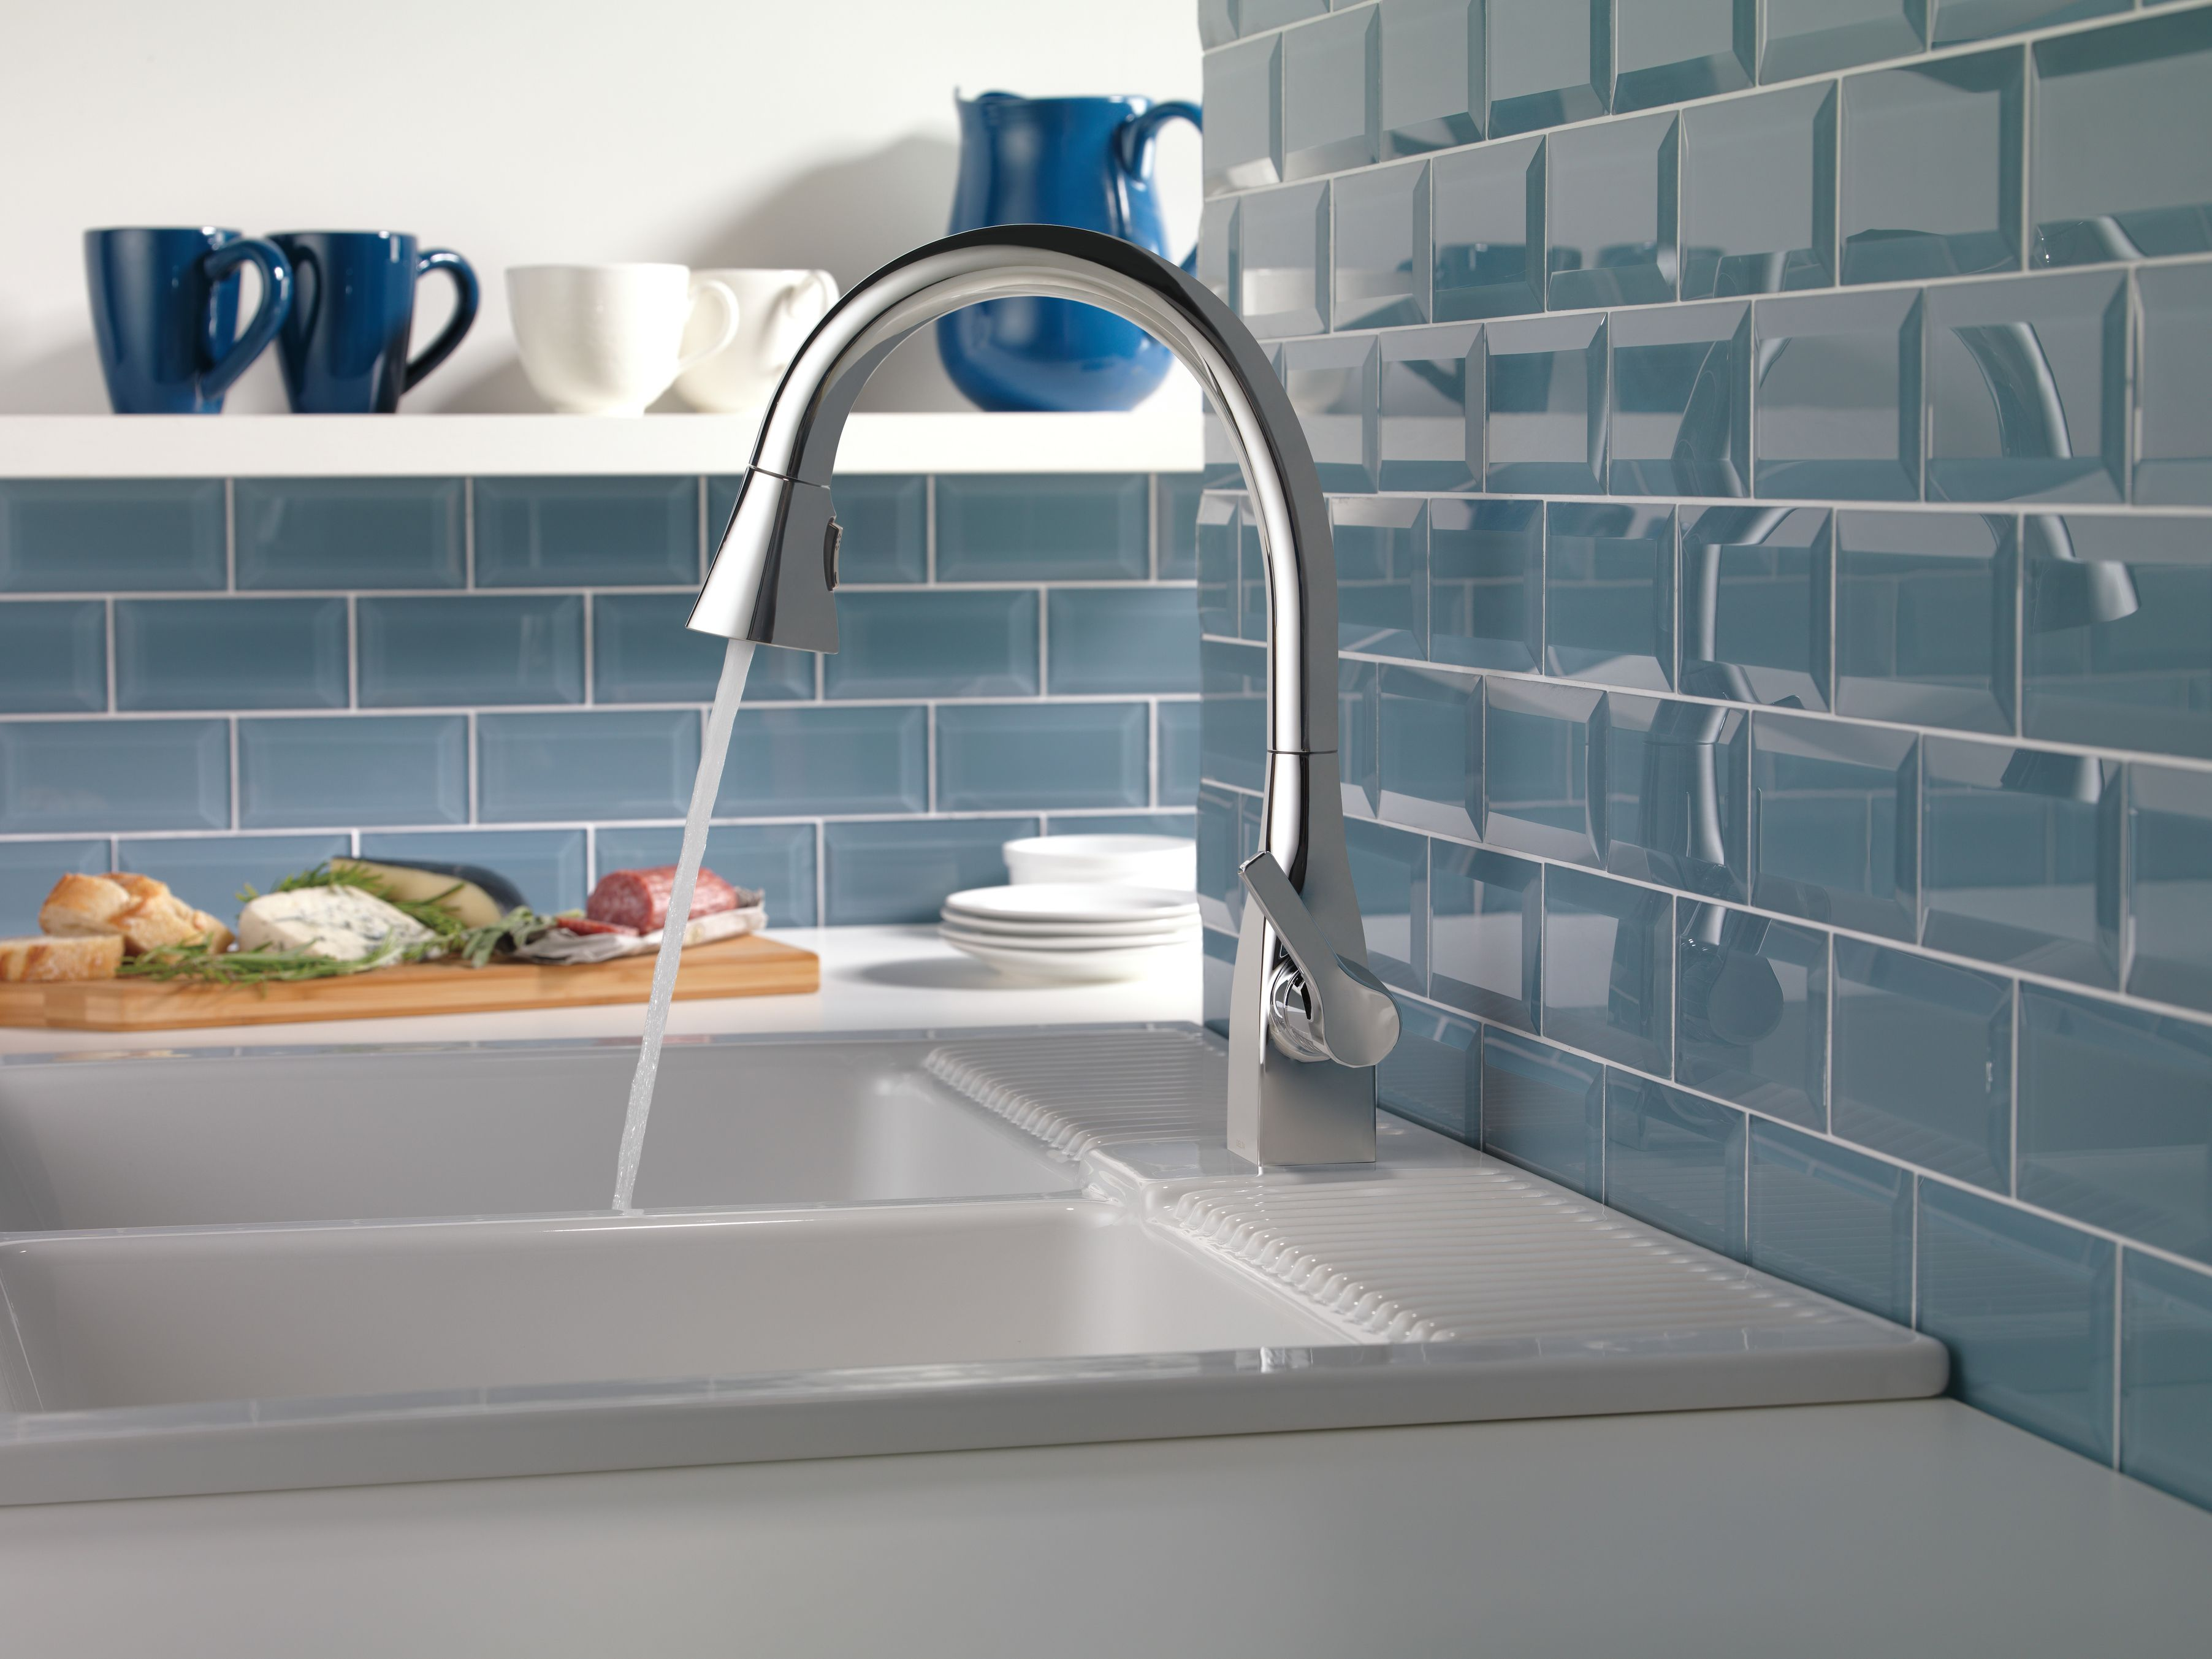 Steel blue subway tile backsplash makes this kitchen feel calm and